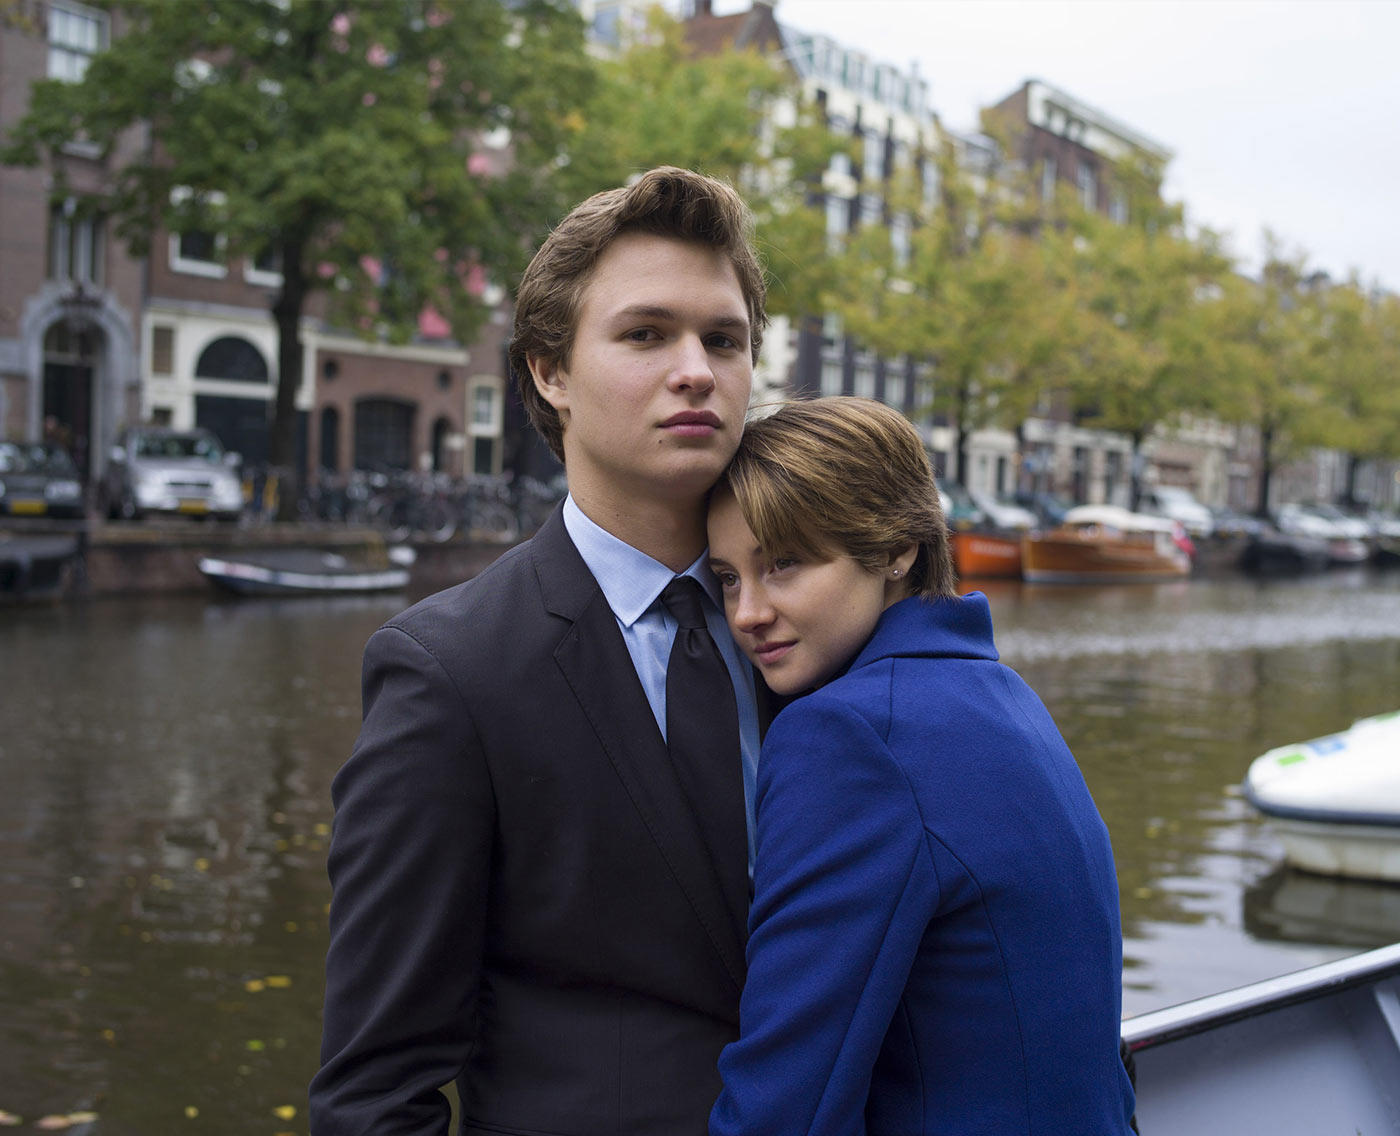 Ansel Elgort as Gus and Shailene Woodley as Hazel in